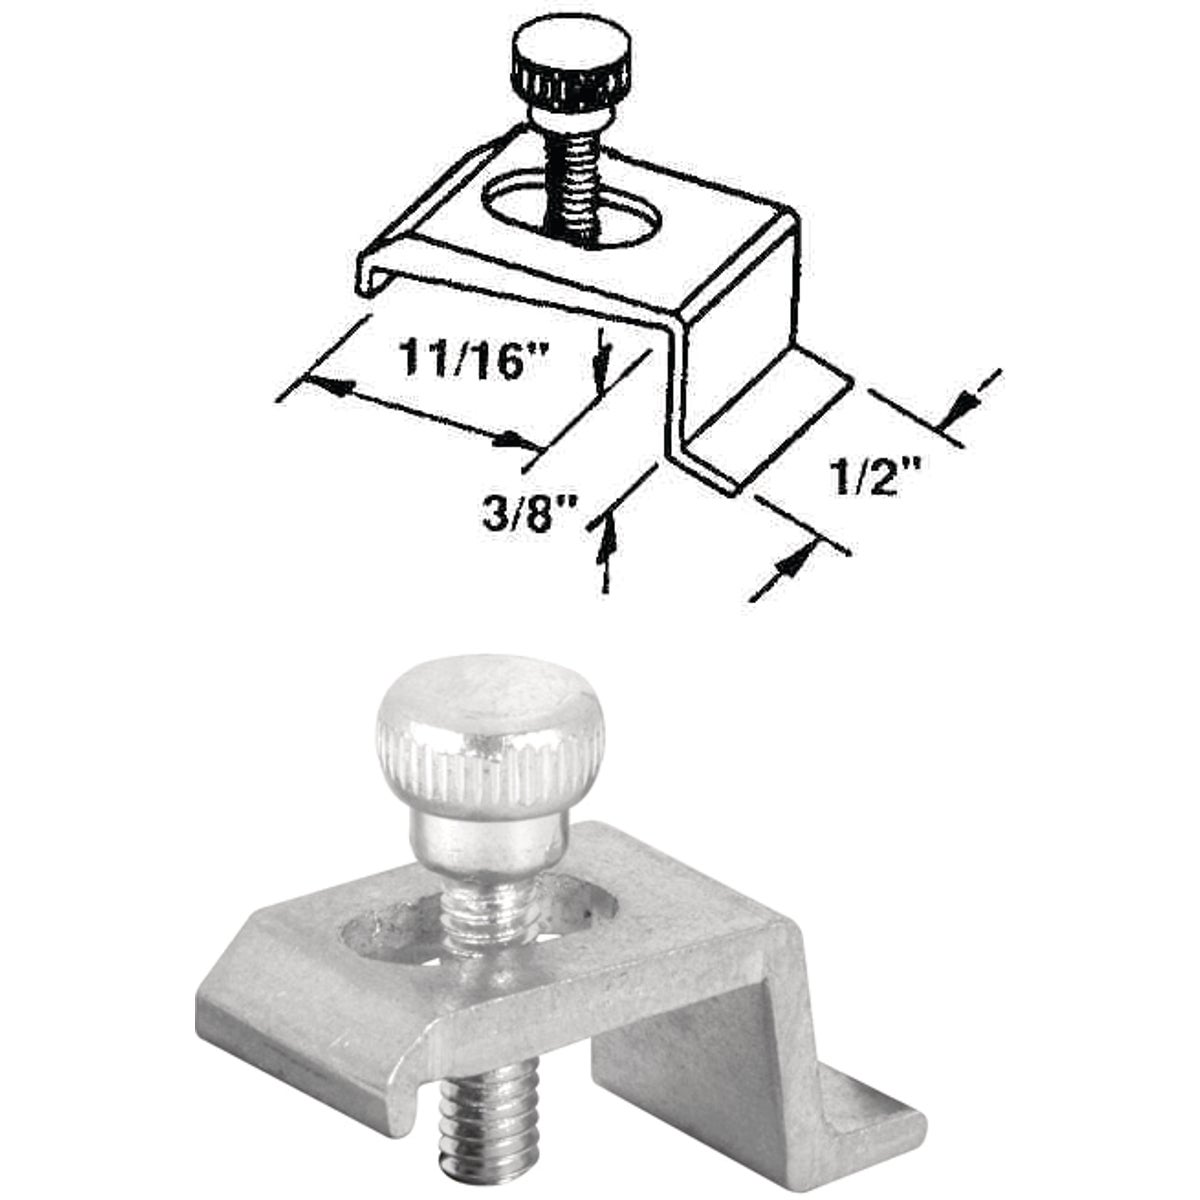 11/16X3/8 PANEL CLIP - PL14756 by Prime Line Products